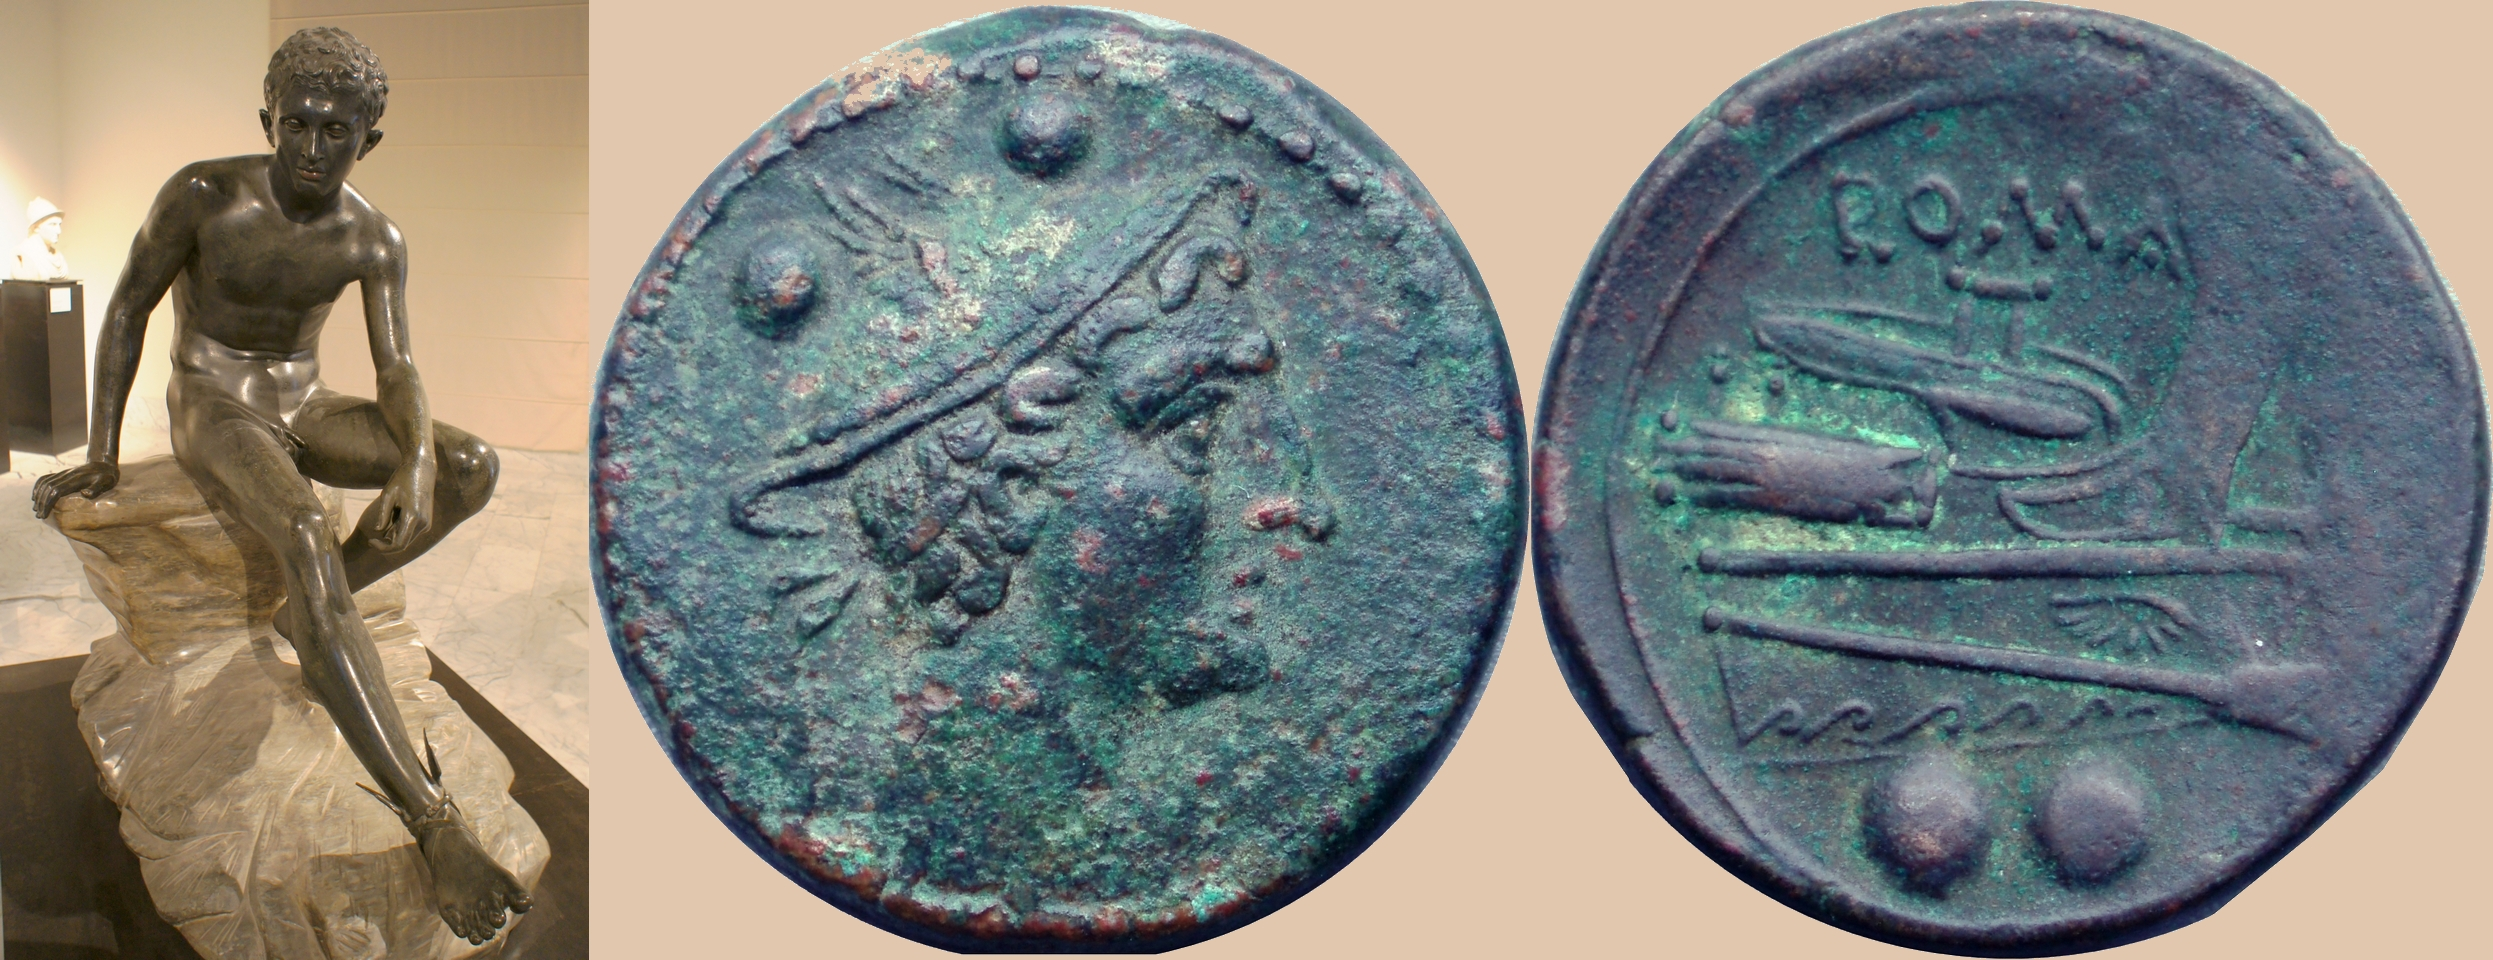 B3 97/6a coin of Luceria with Mercury and prow, alongside statue of the Greek God Hermes or Roman Mercury resting